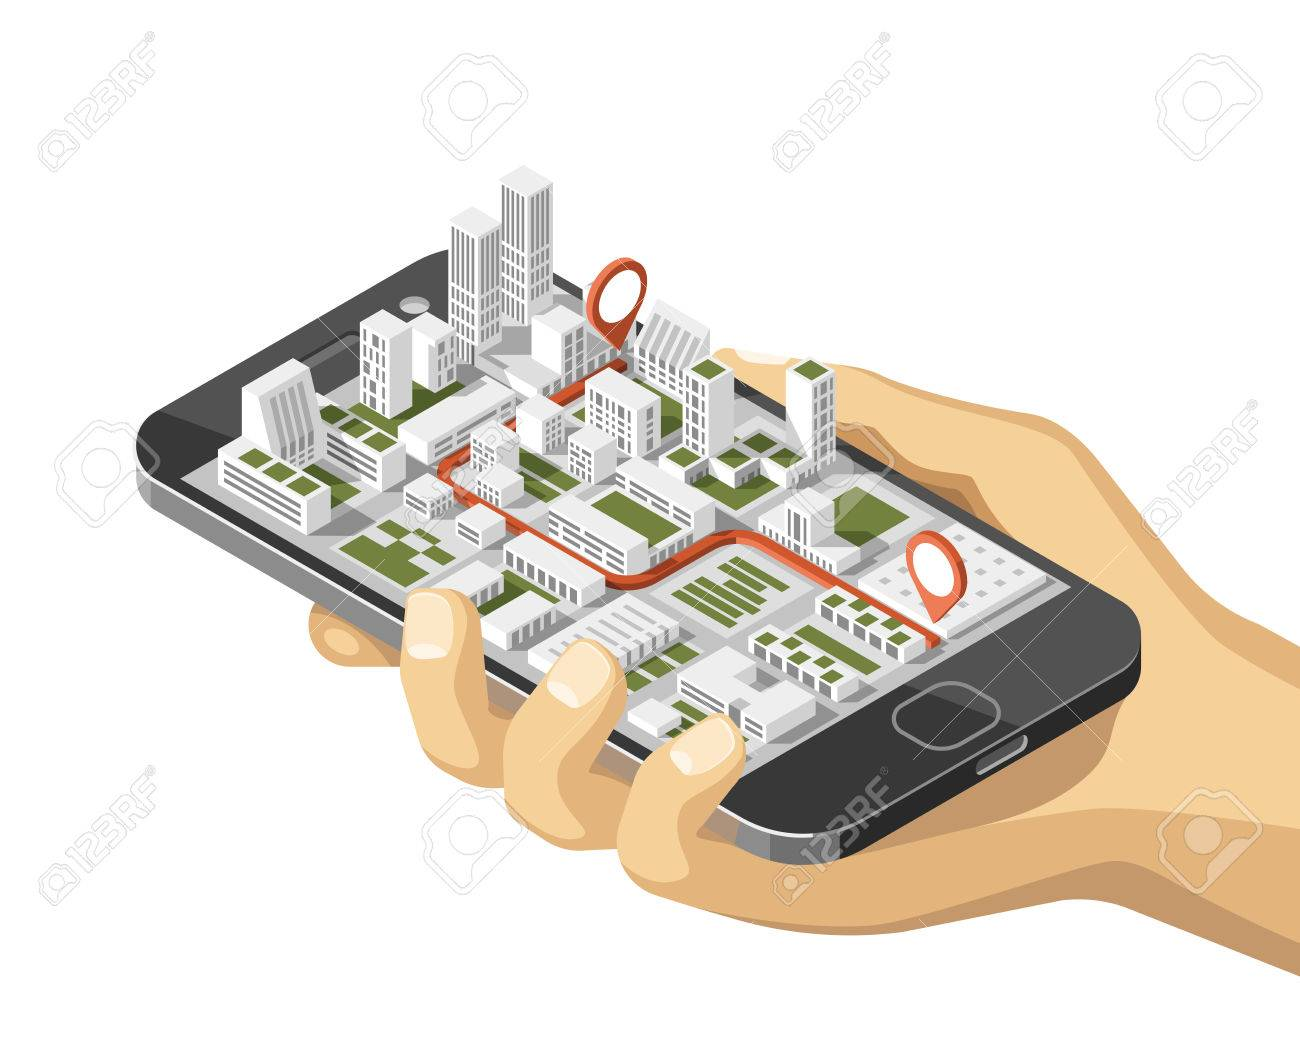 Mobile gps and tracking concept. Location track app on touchscreen smartphone, on isometric city map background. 3d vector illustration. - 83995611